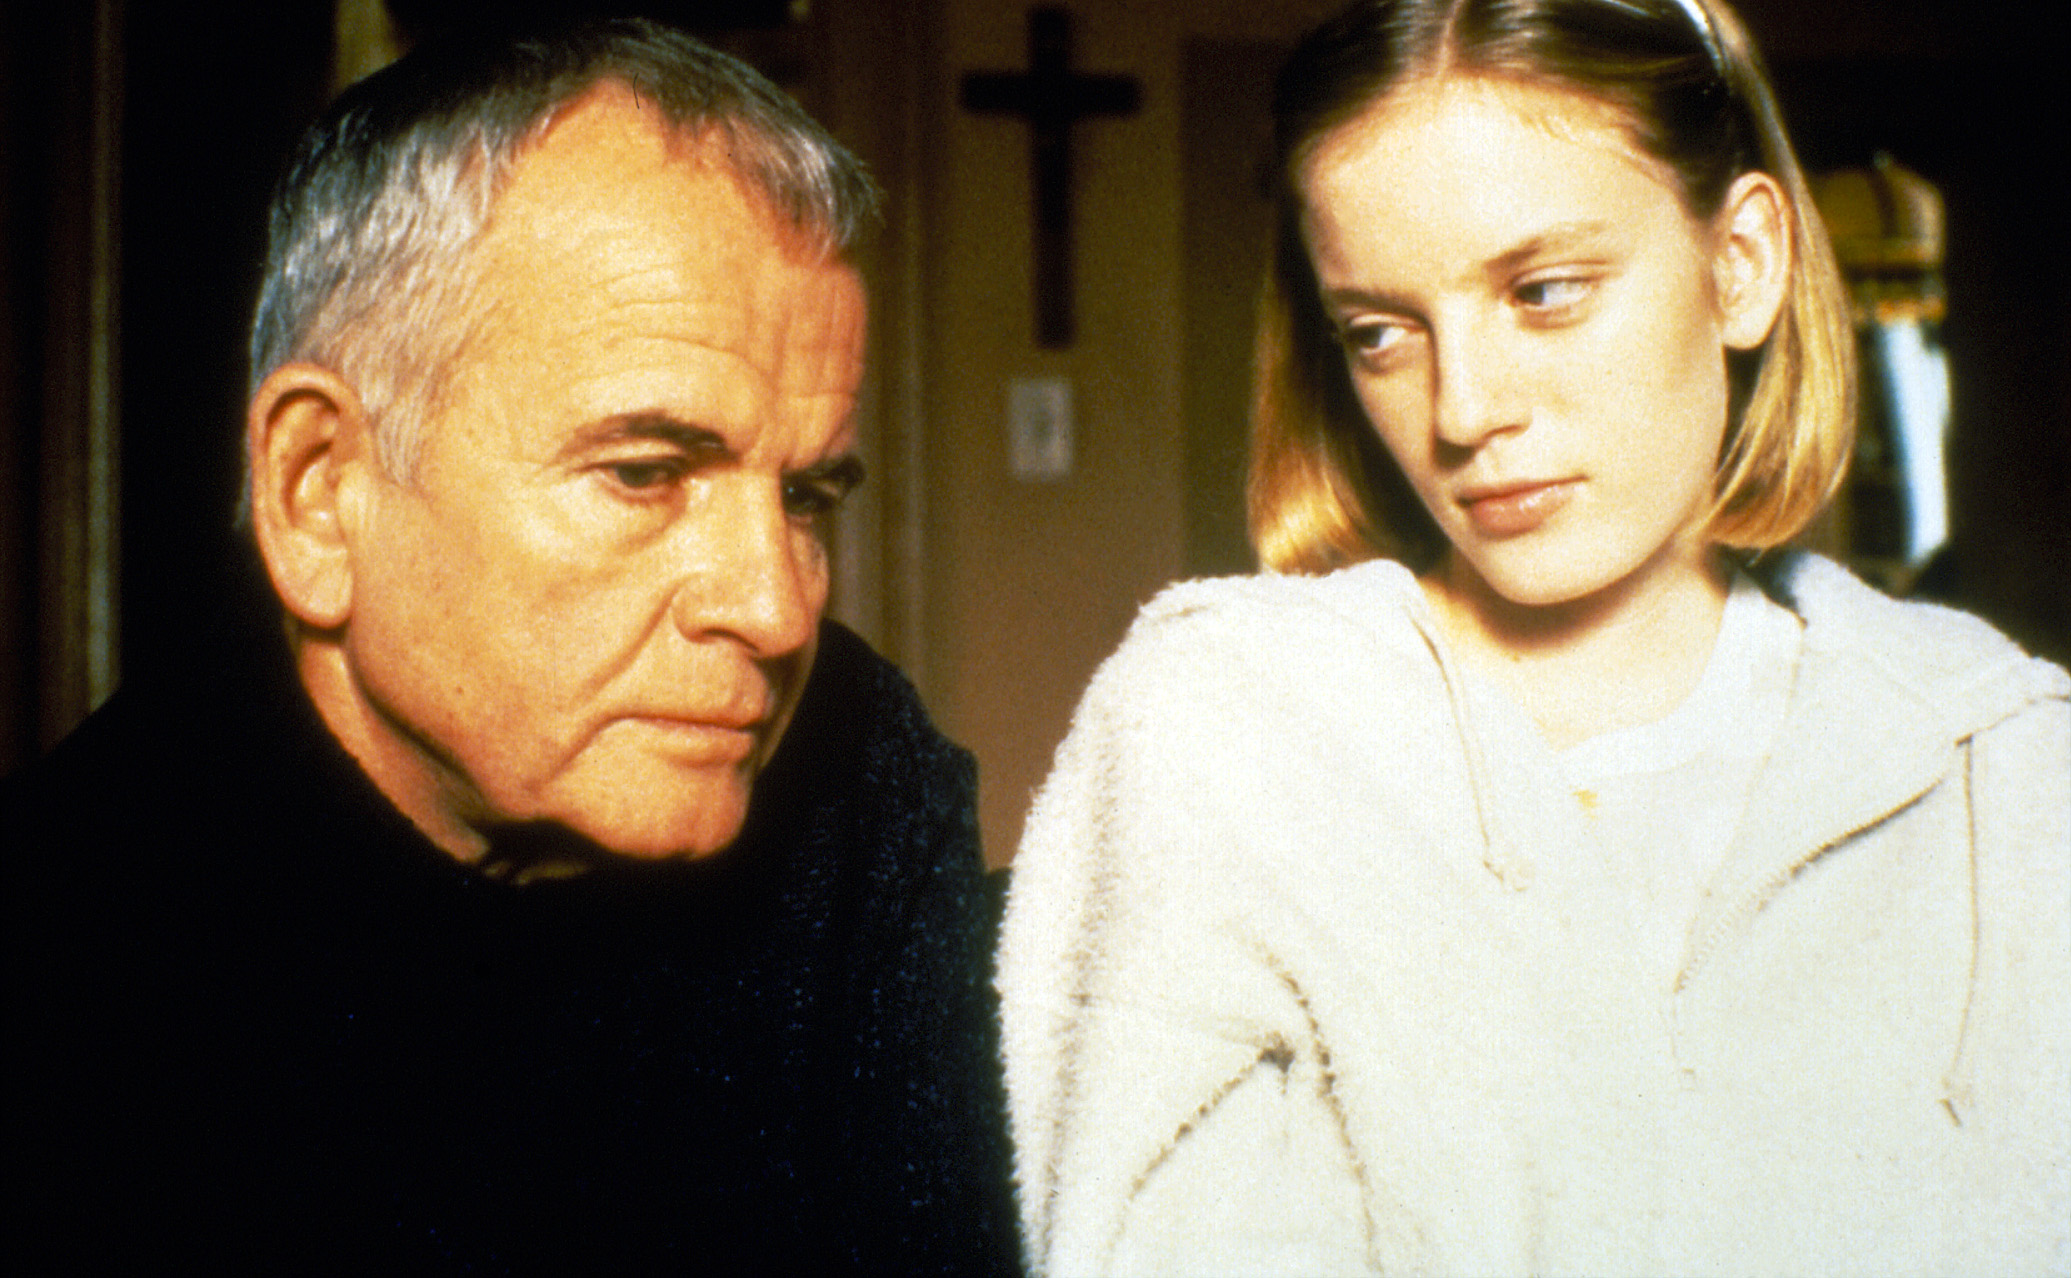 The Sweet Hereafter (1997) – Drama